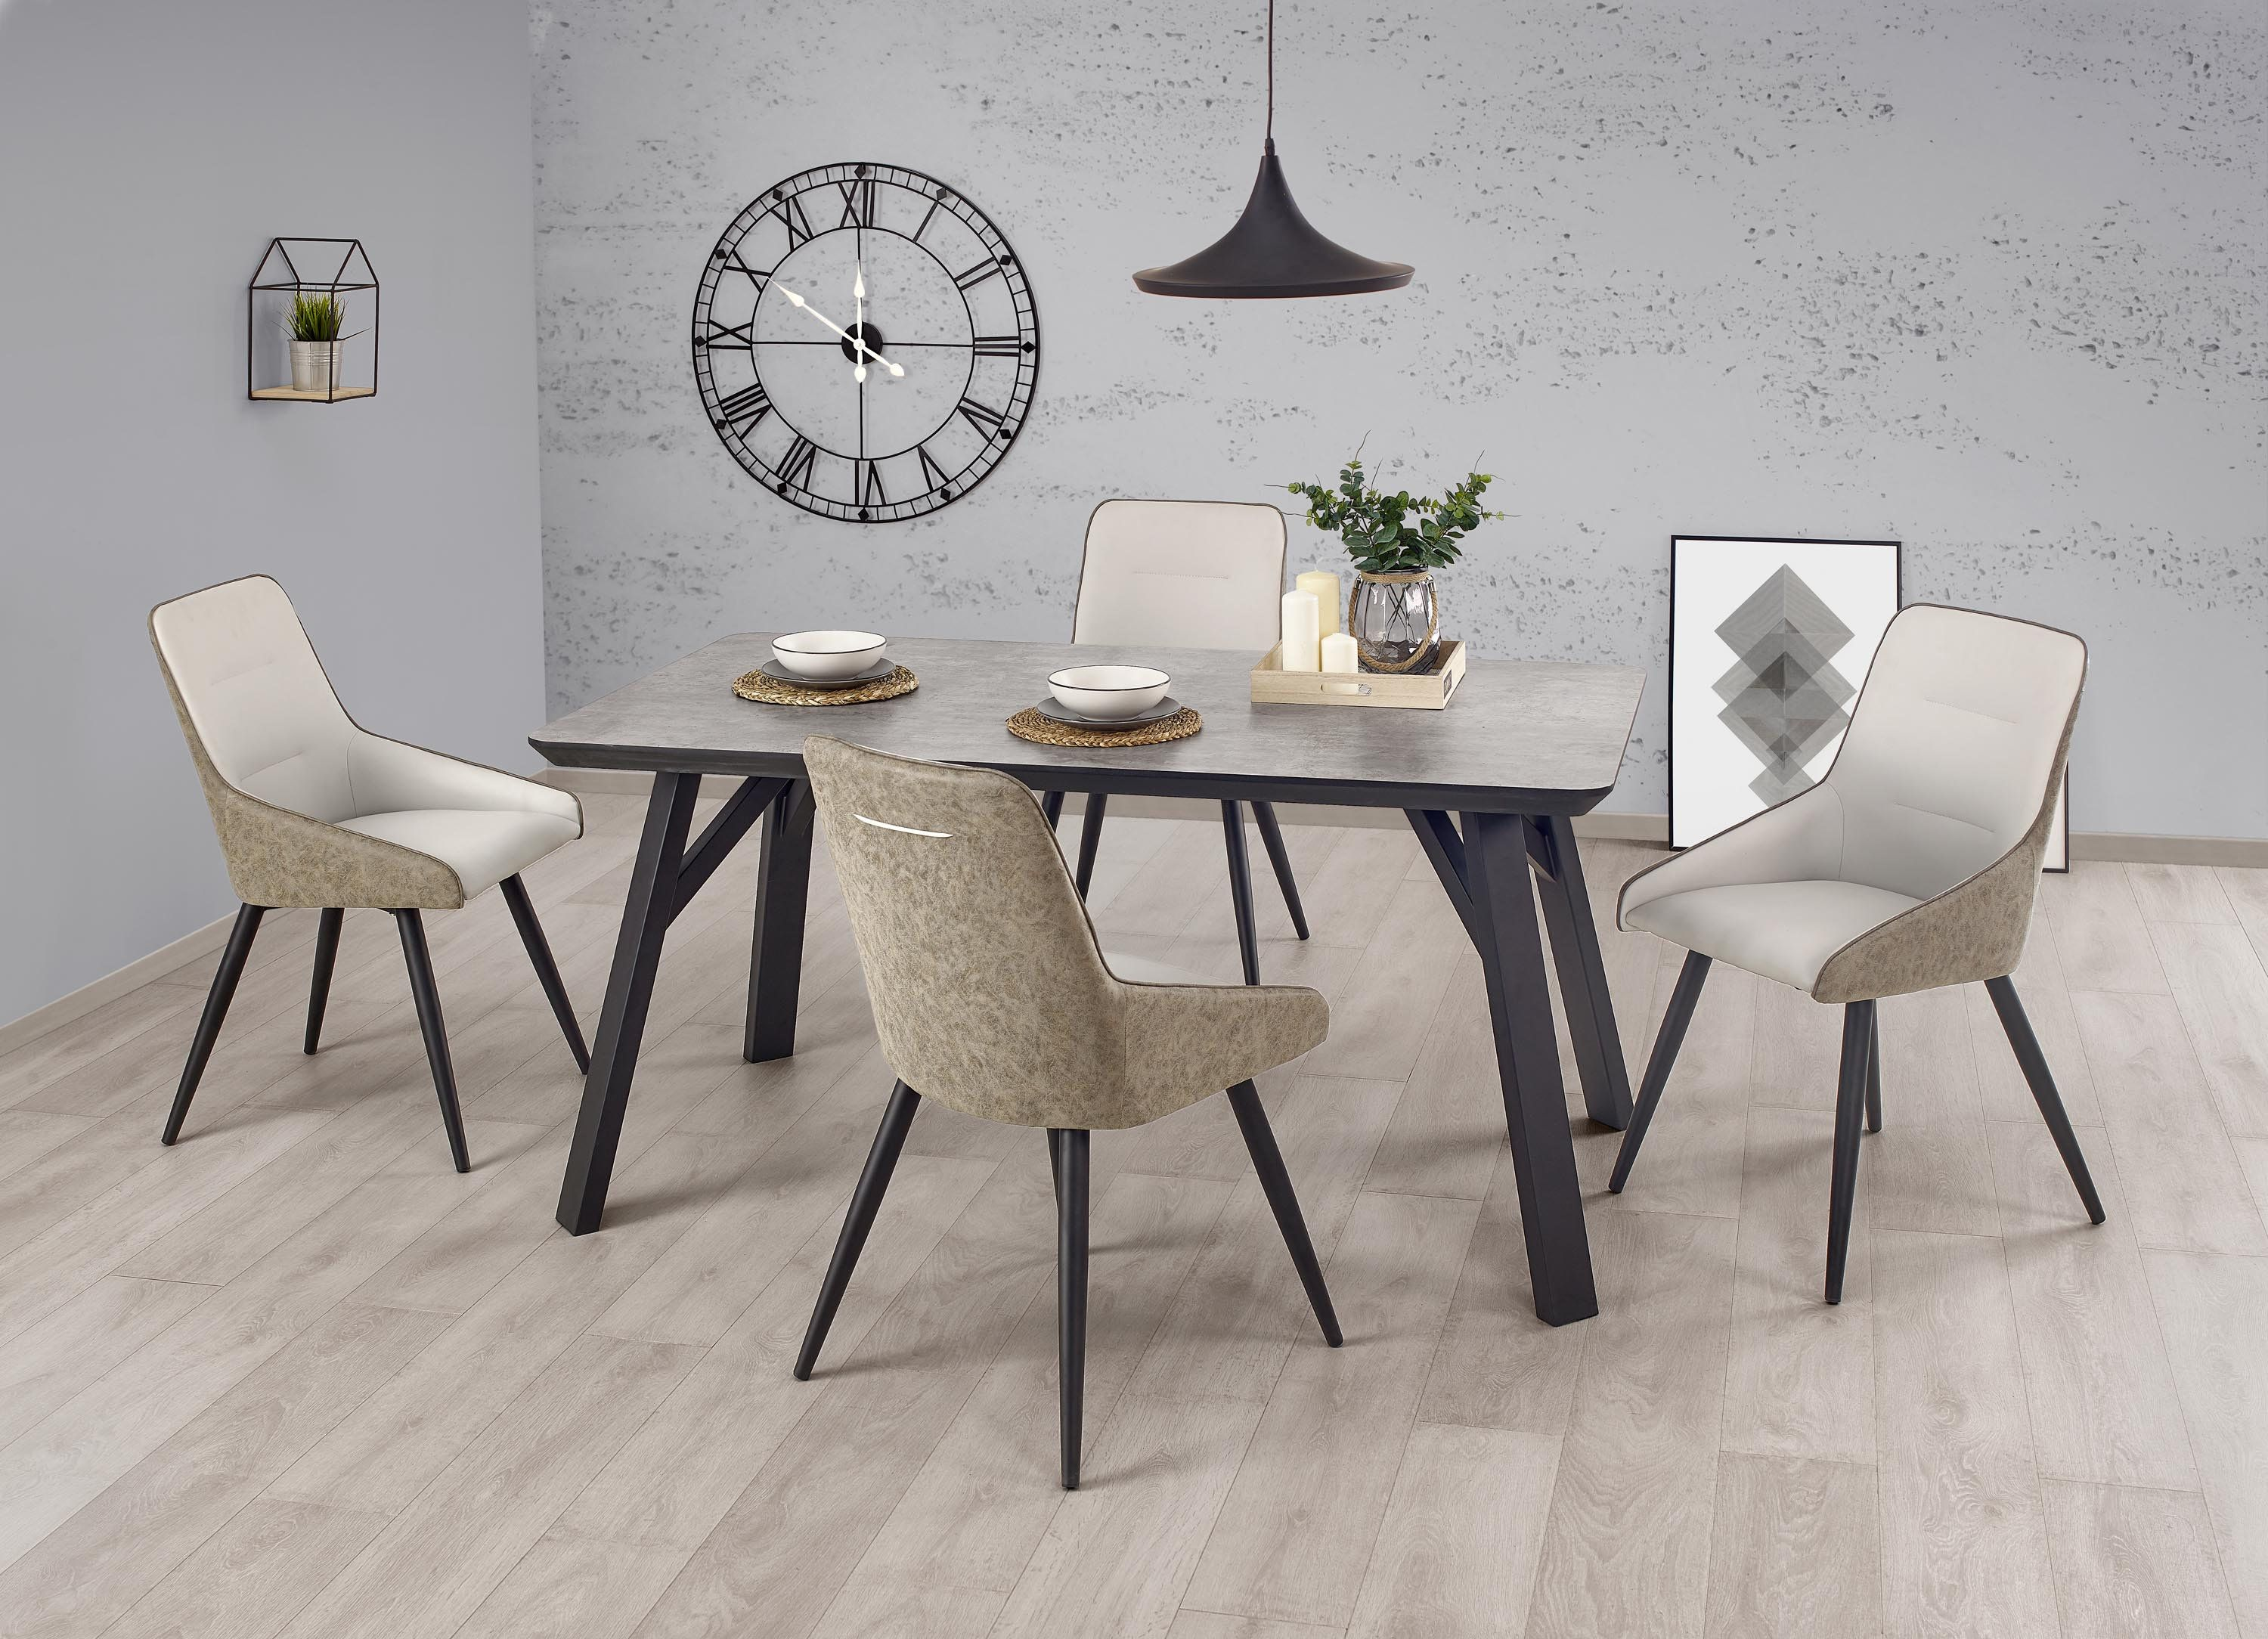 Halifax Vintage Industrial Grey Concrete Effect And Black Metal Dining Table Grey Metal Chairs Metal Dining Table Dining Table Dining Furniture Sets